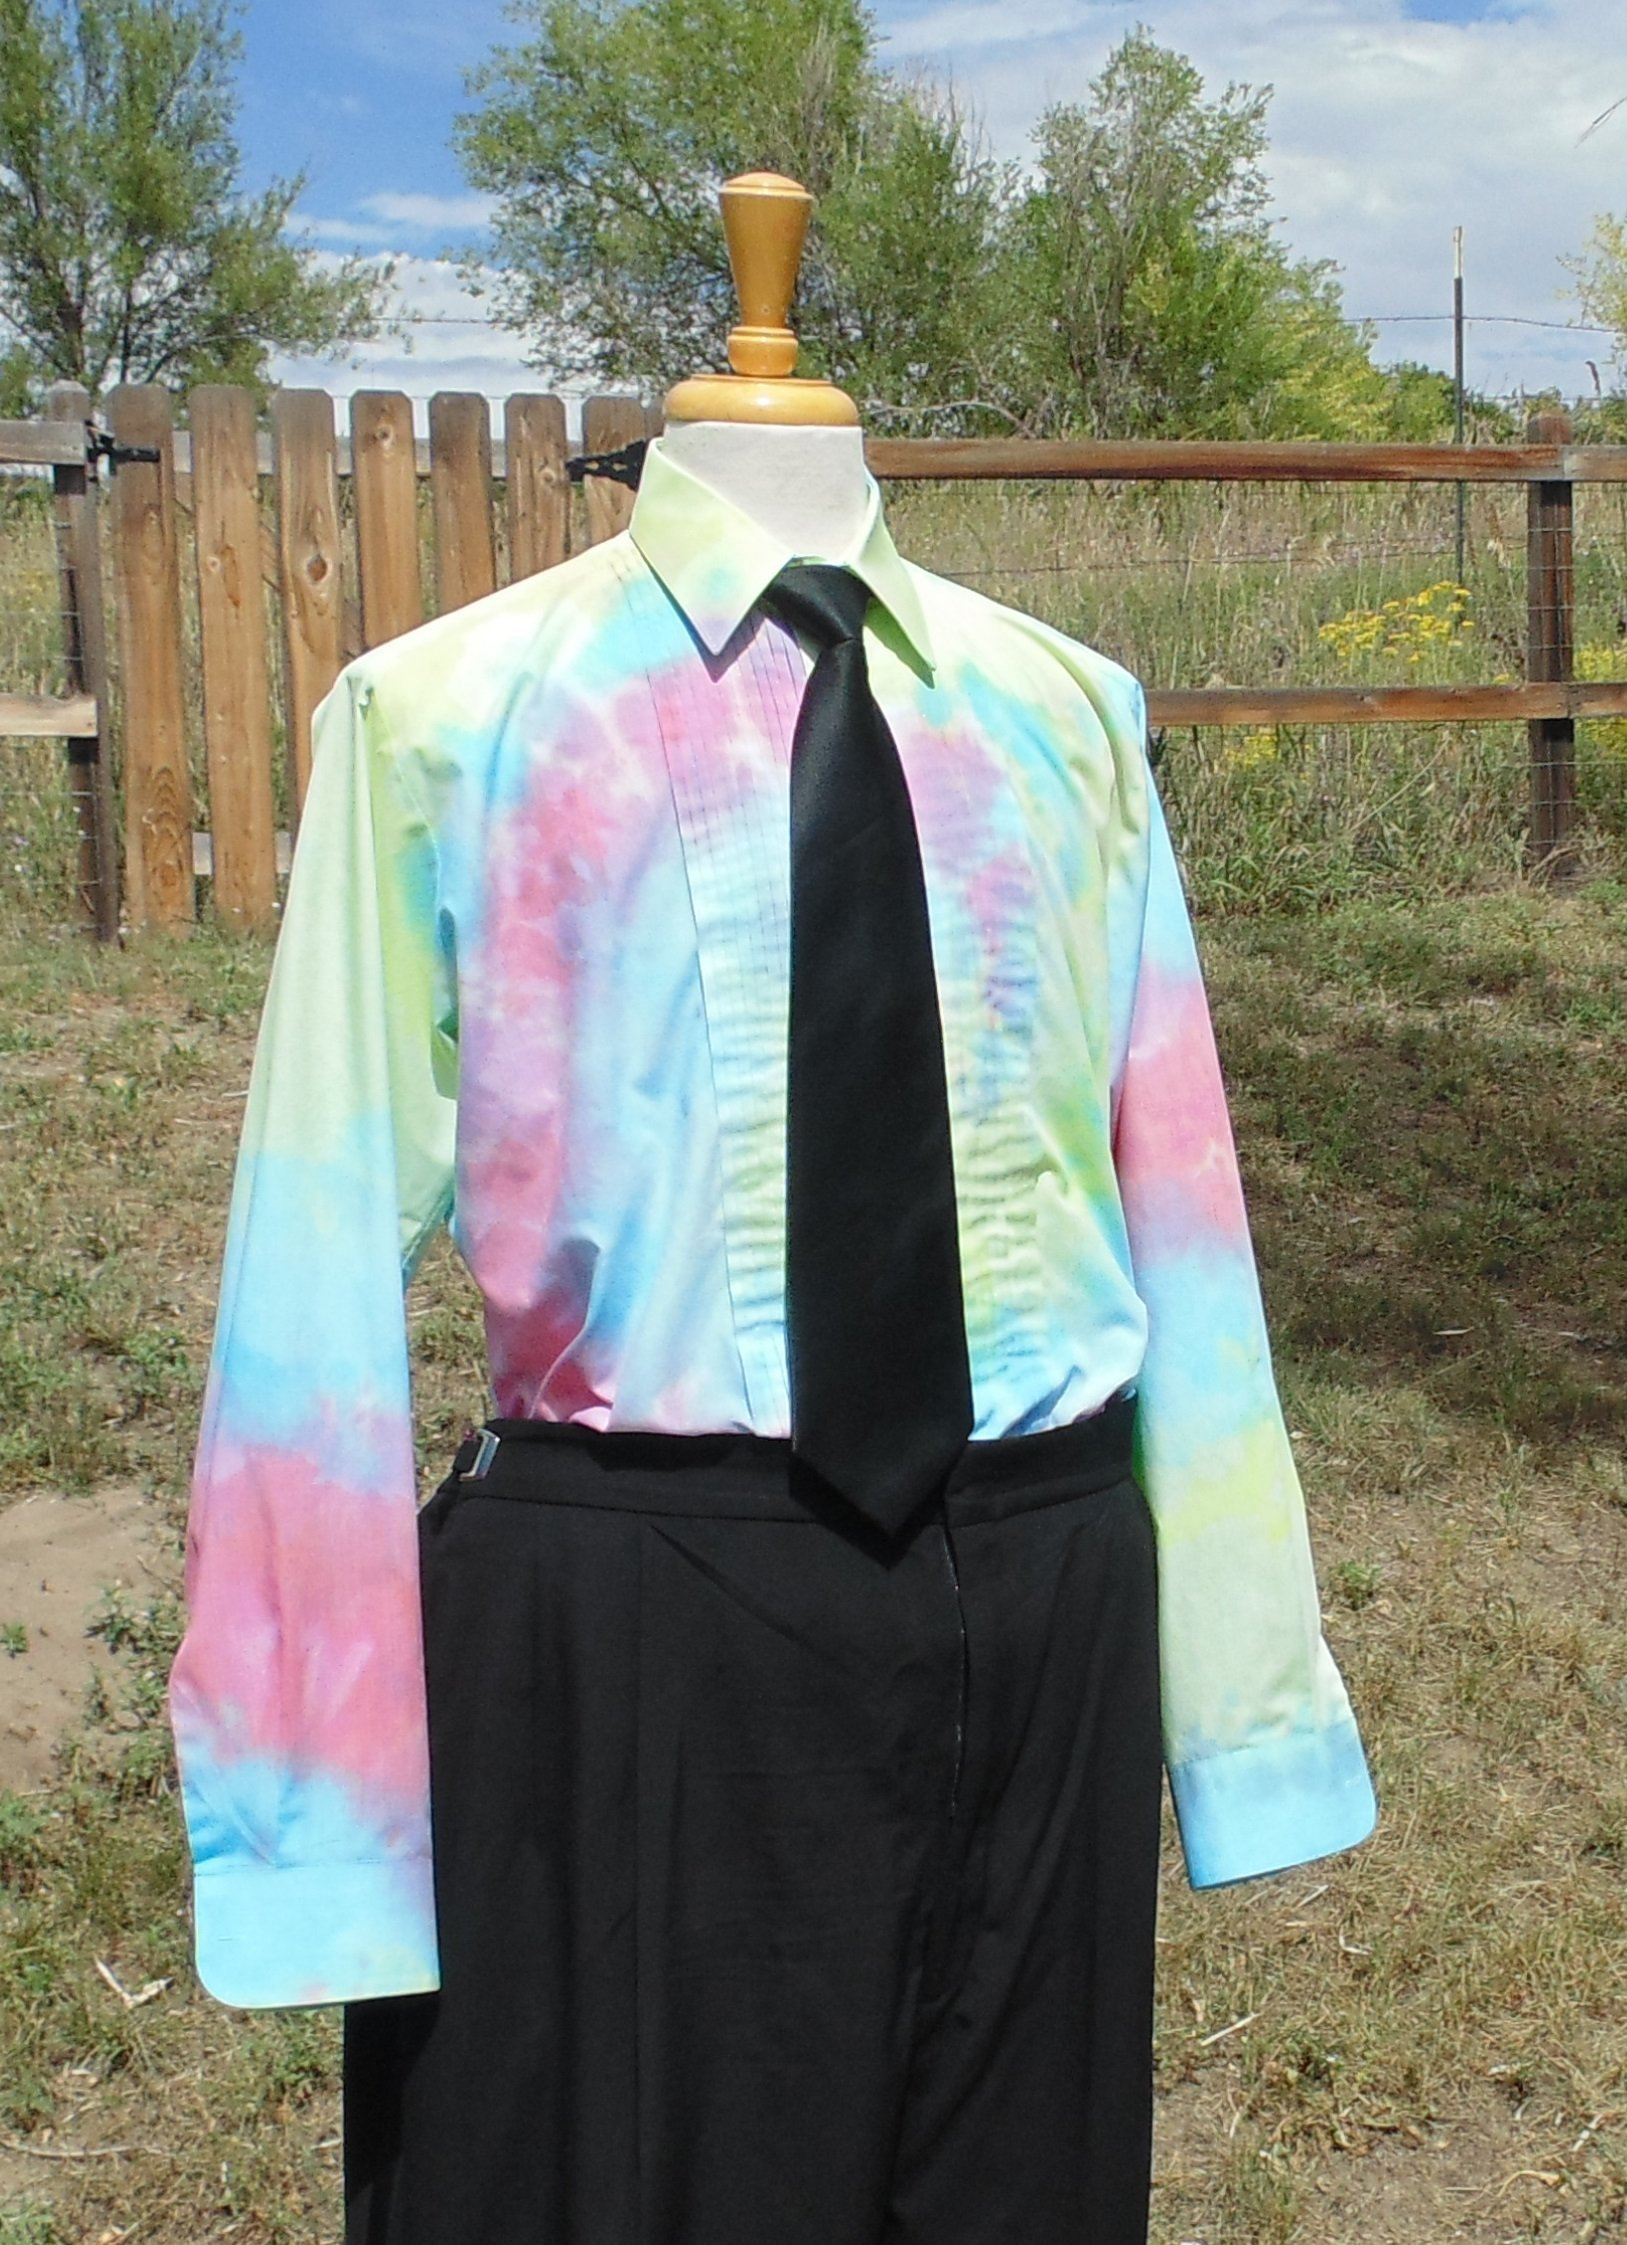 Men's Medium Hand Tie-dye Tuxedo Shirt by Fru Fru and Feathers Costumes & Gifts